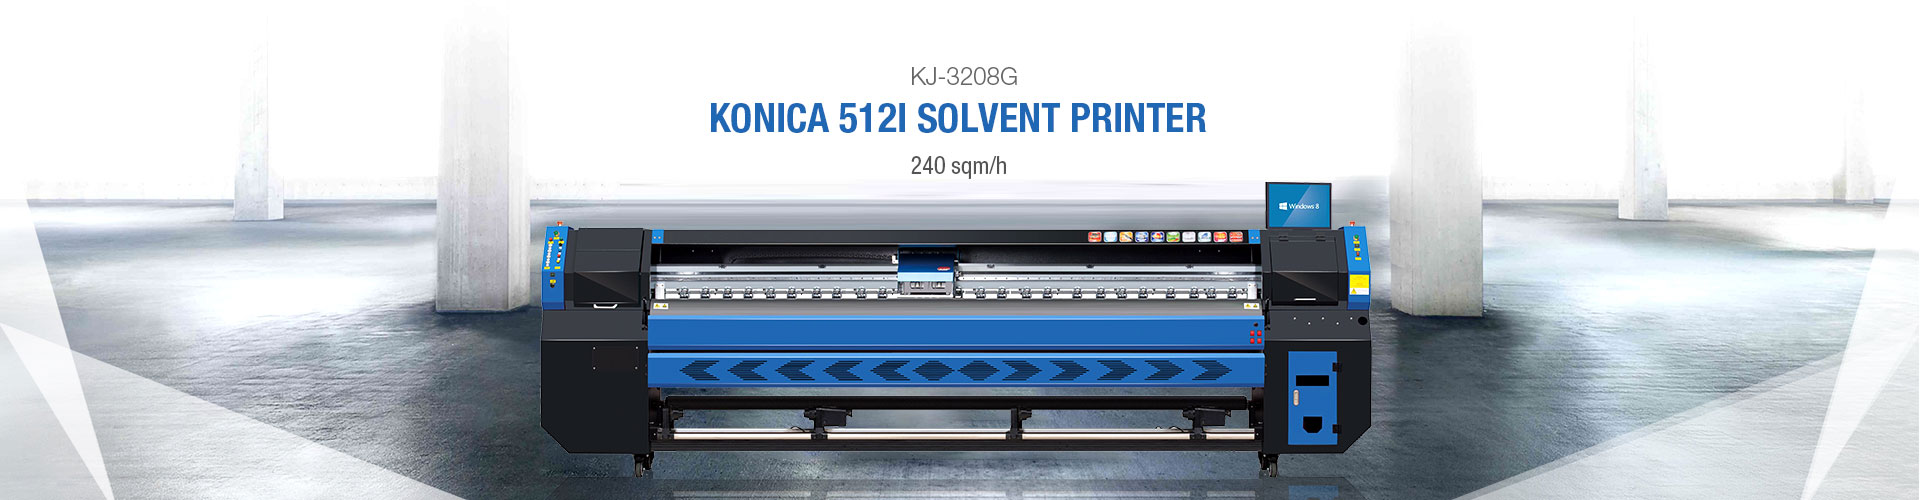 KINGJET KJ-3208G Konica 512i Large Format Printer